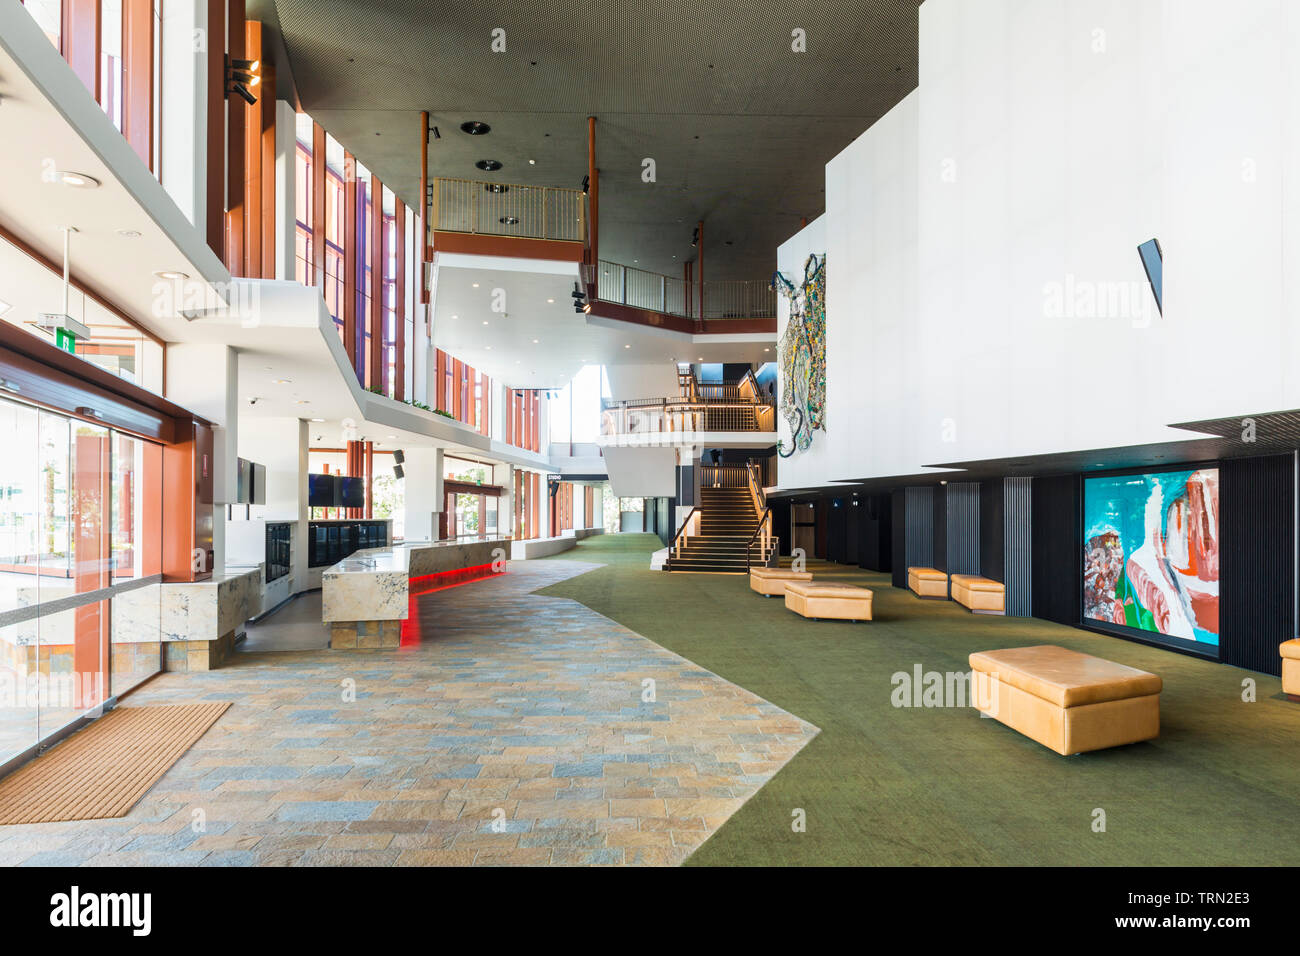 Le foyer de la Cairns Performing Arts Center, achevé à la fin de 2018. Cairns, Queensland, Australie Banque D'Images